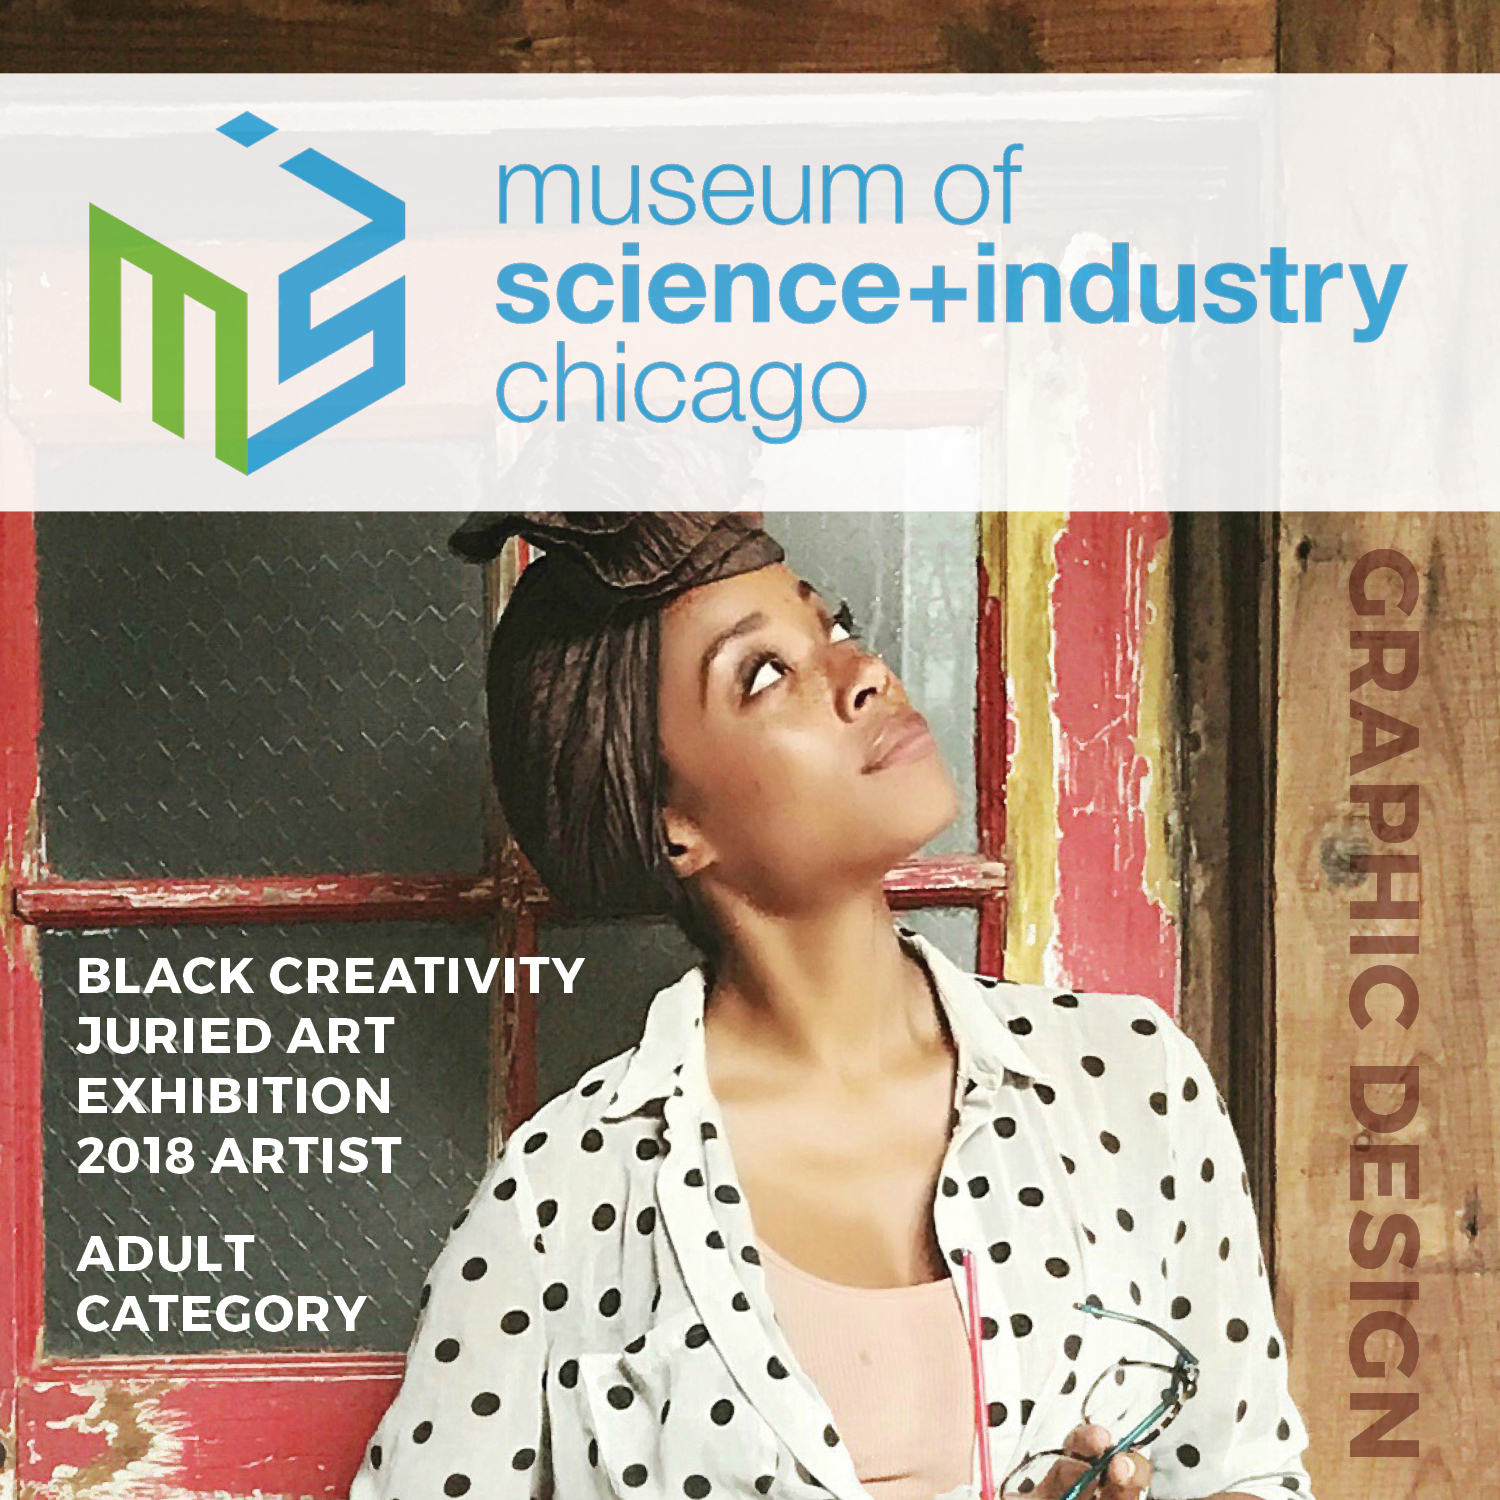 The Museum of Science and Industry has been having this exhibition since 1970, and its mission is to inspire youth (and more).  Learn more here.